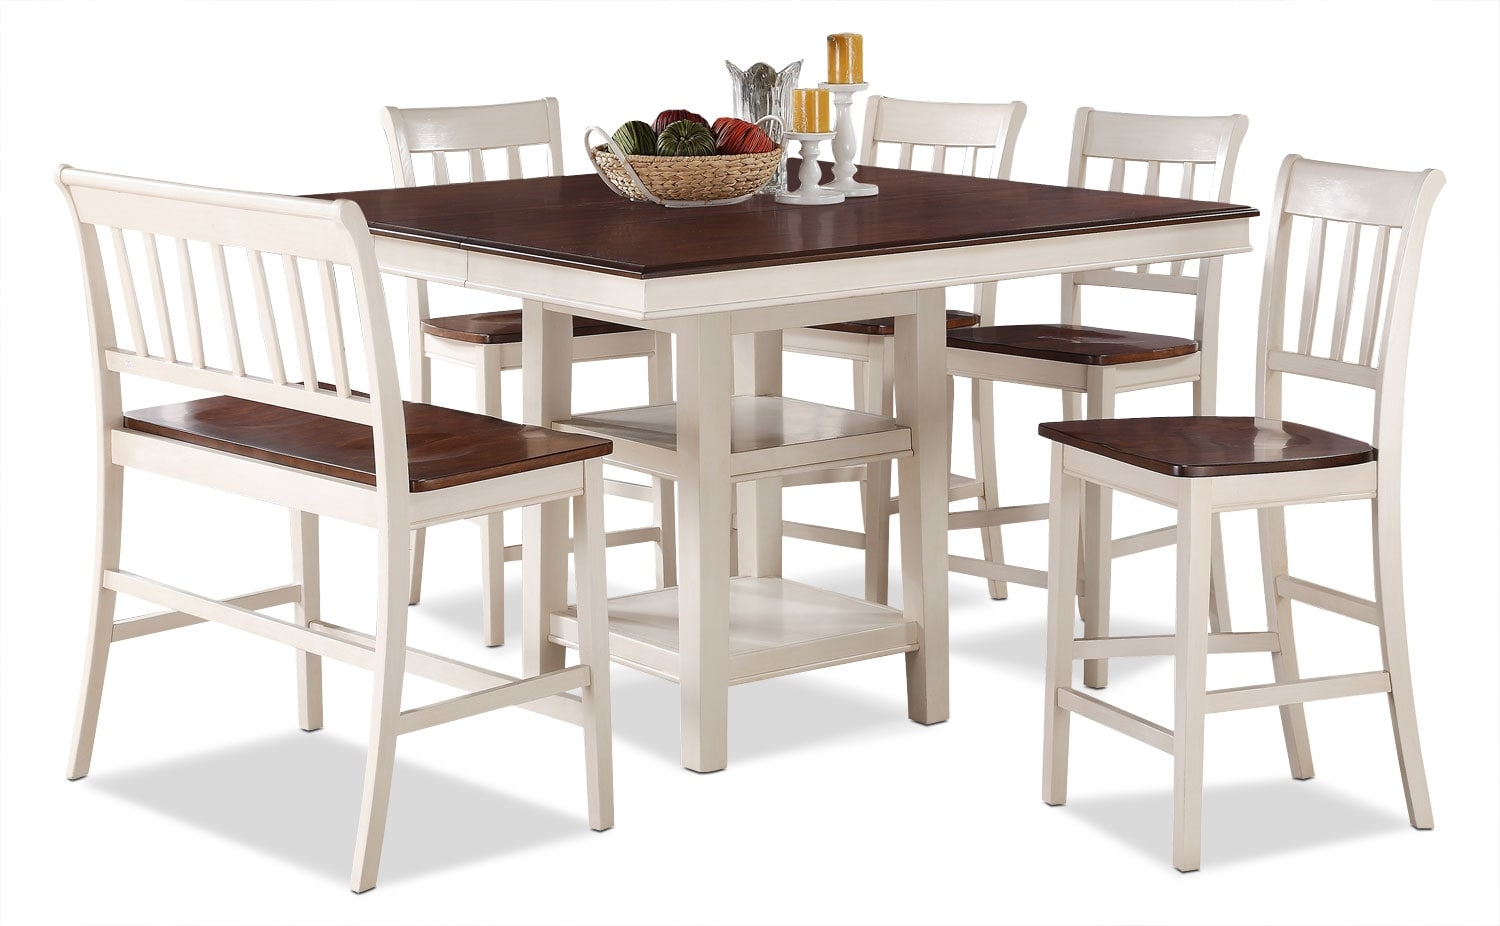 Nyla 6-Piece Counter-Height Dining Package – Antique White and Cherry